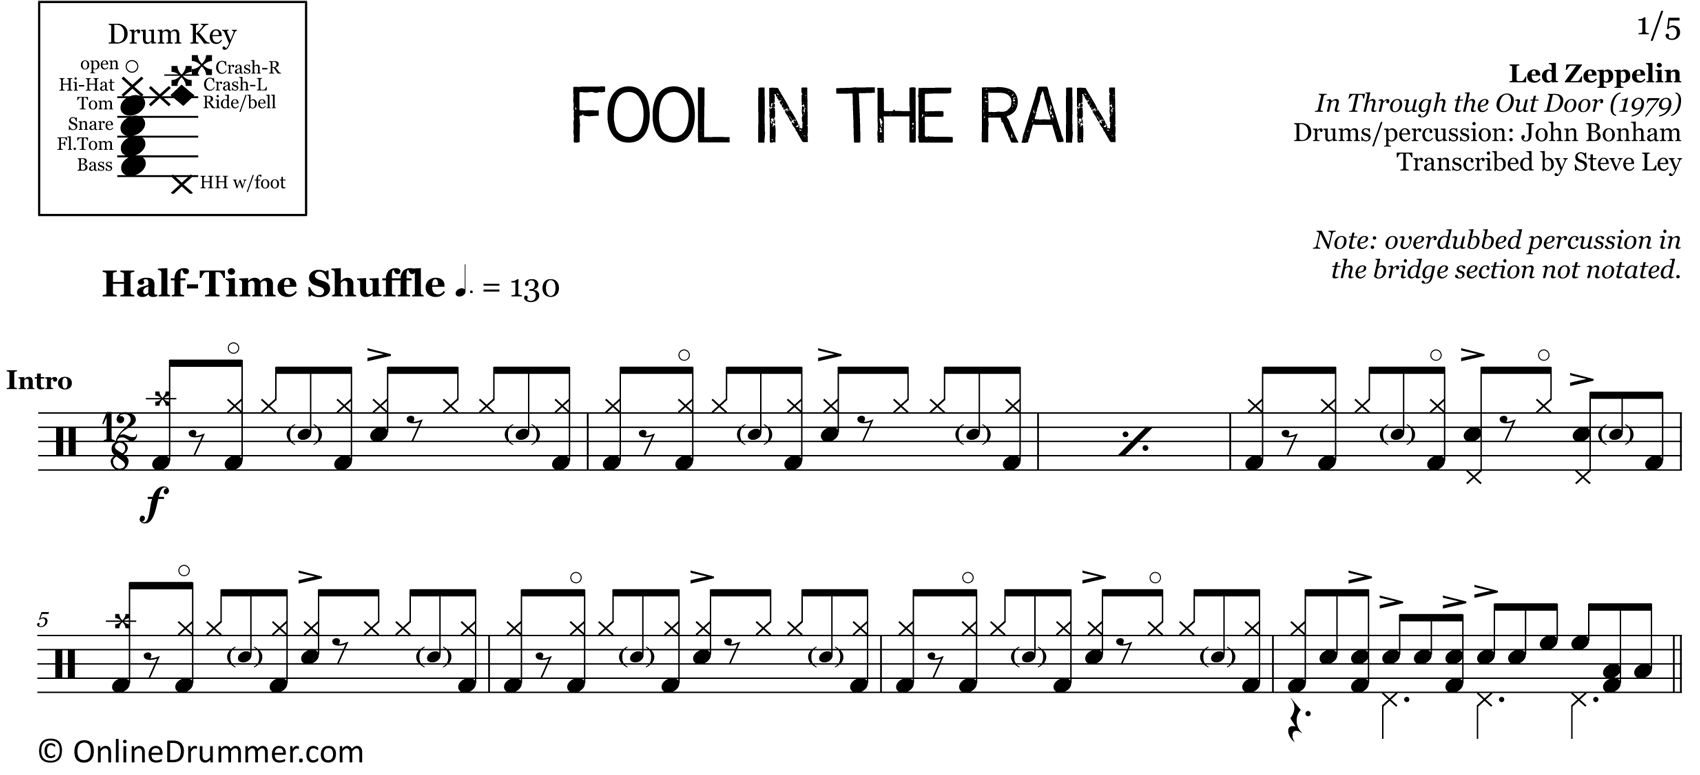 Fool in the Rain - Led Zeppelin - Drum Sheet Music